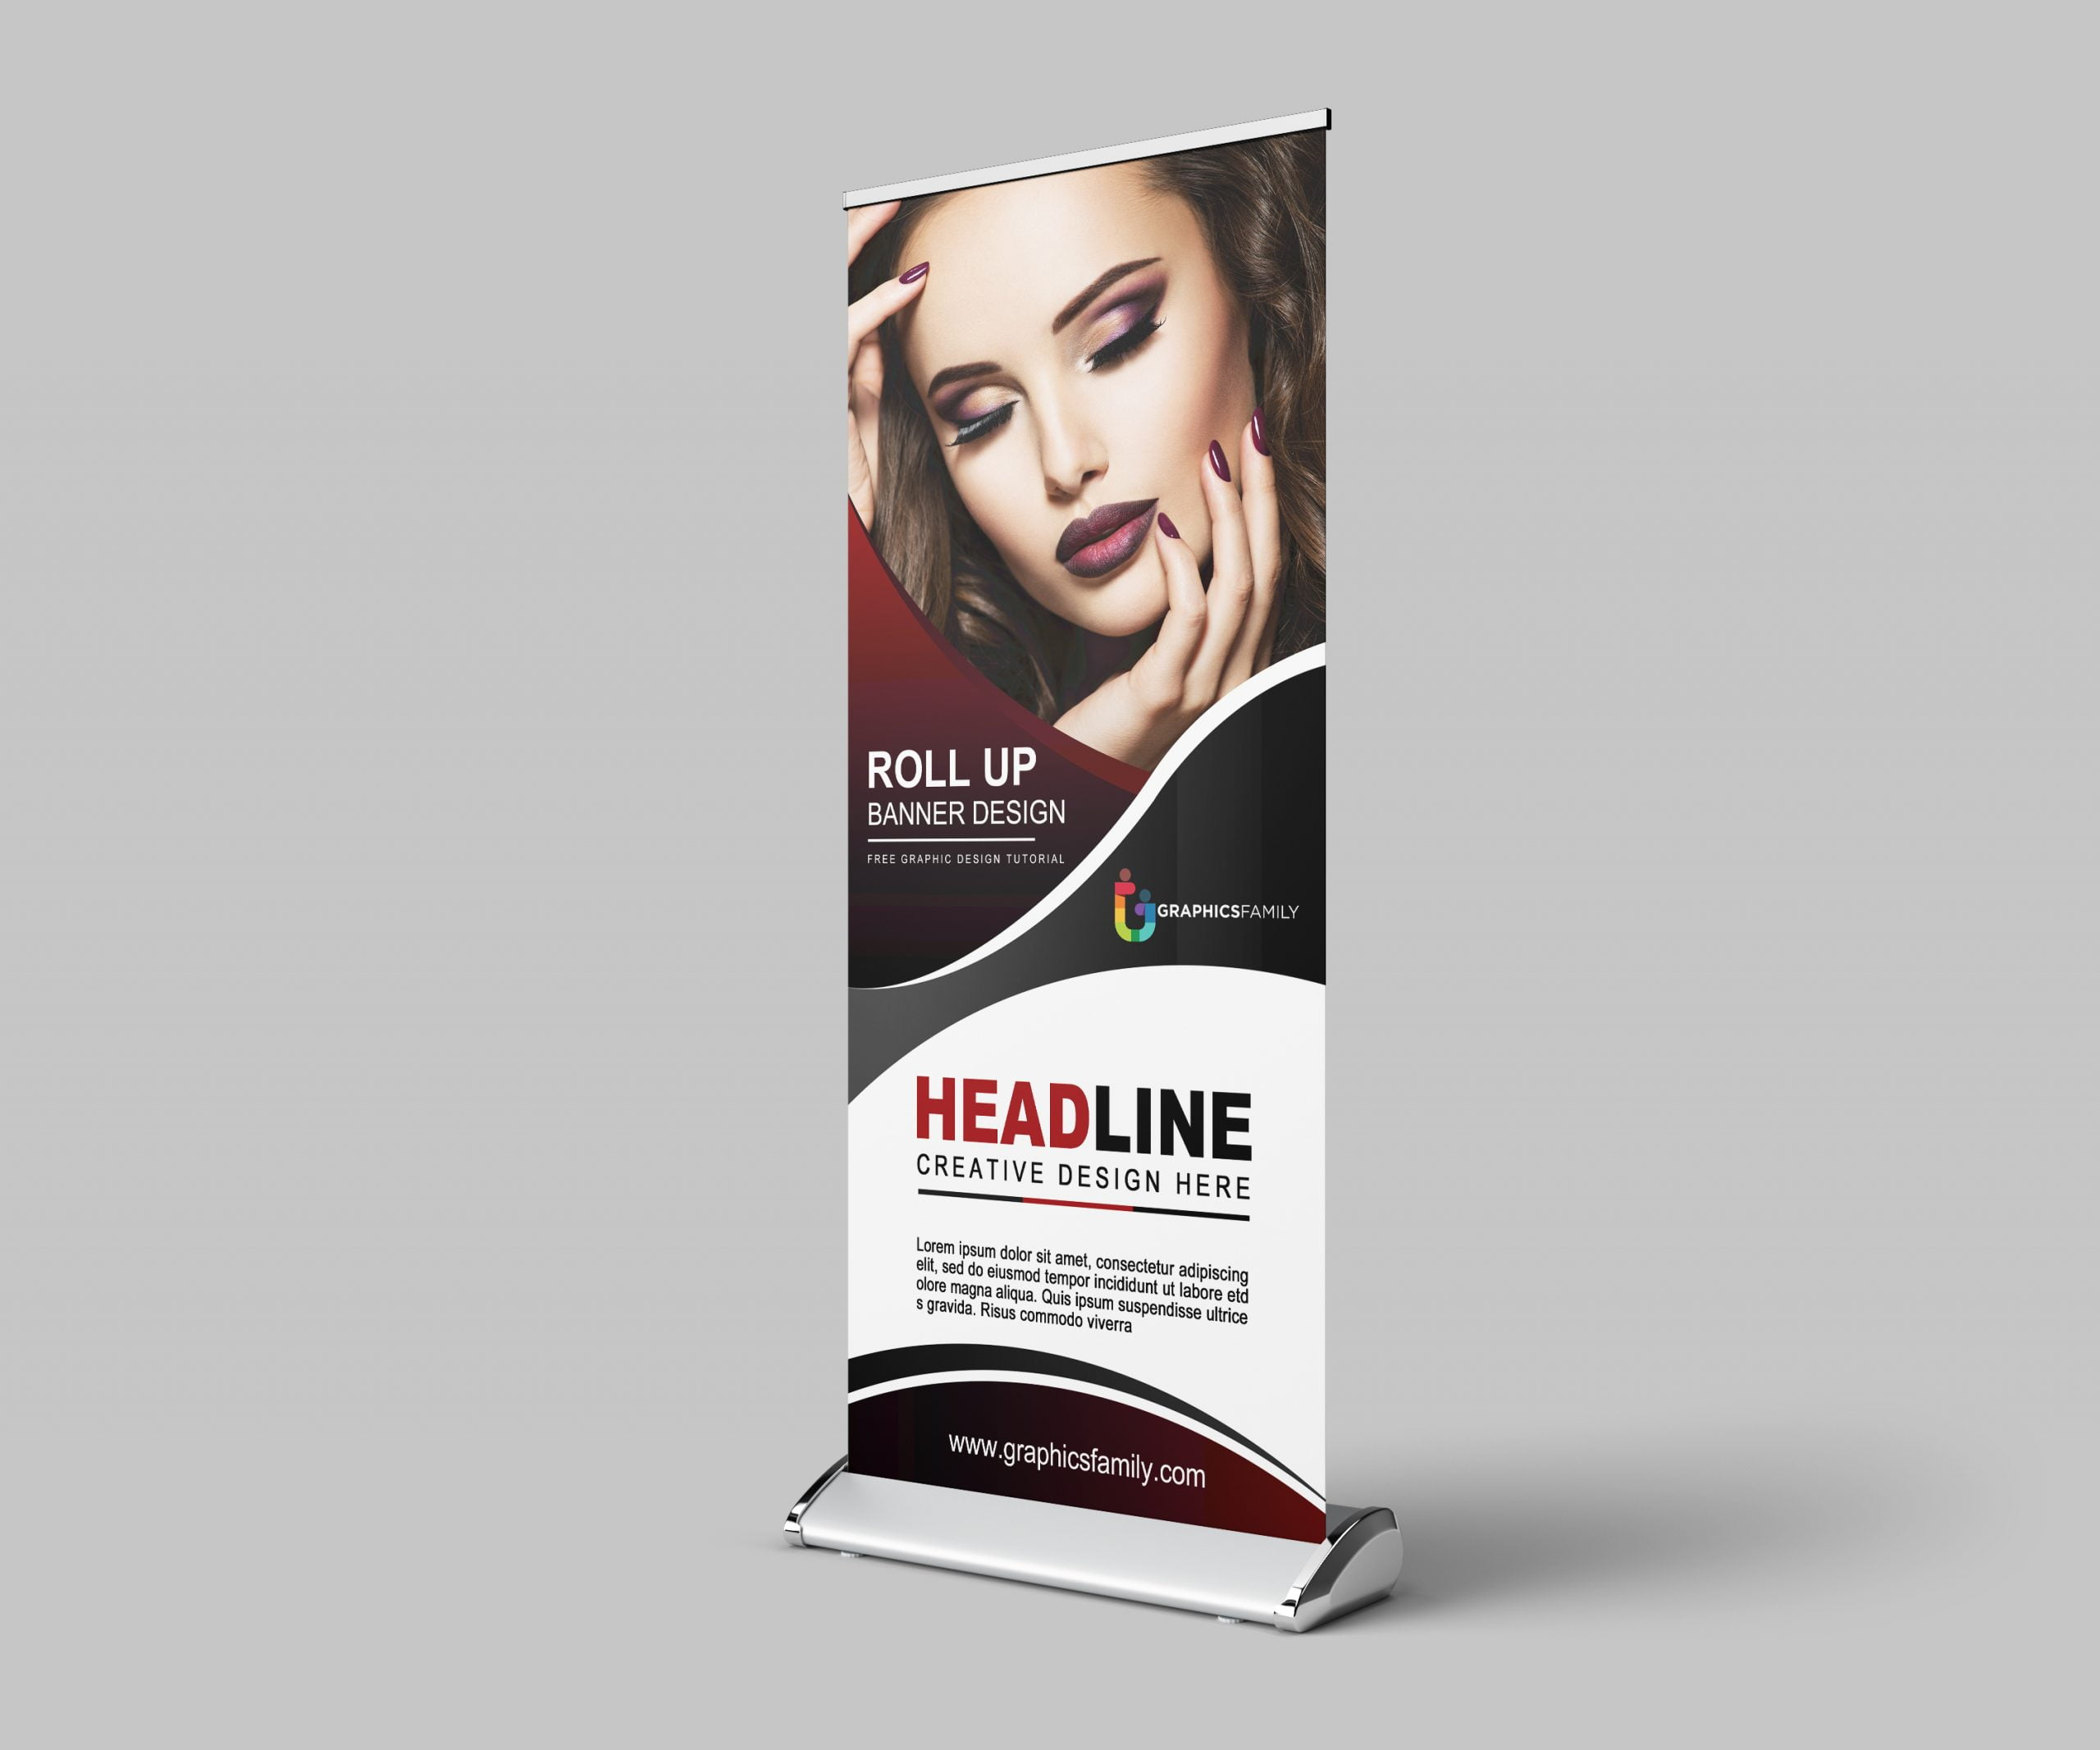 Free-Fashion-Show-Roll-Up-Banner-Design